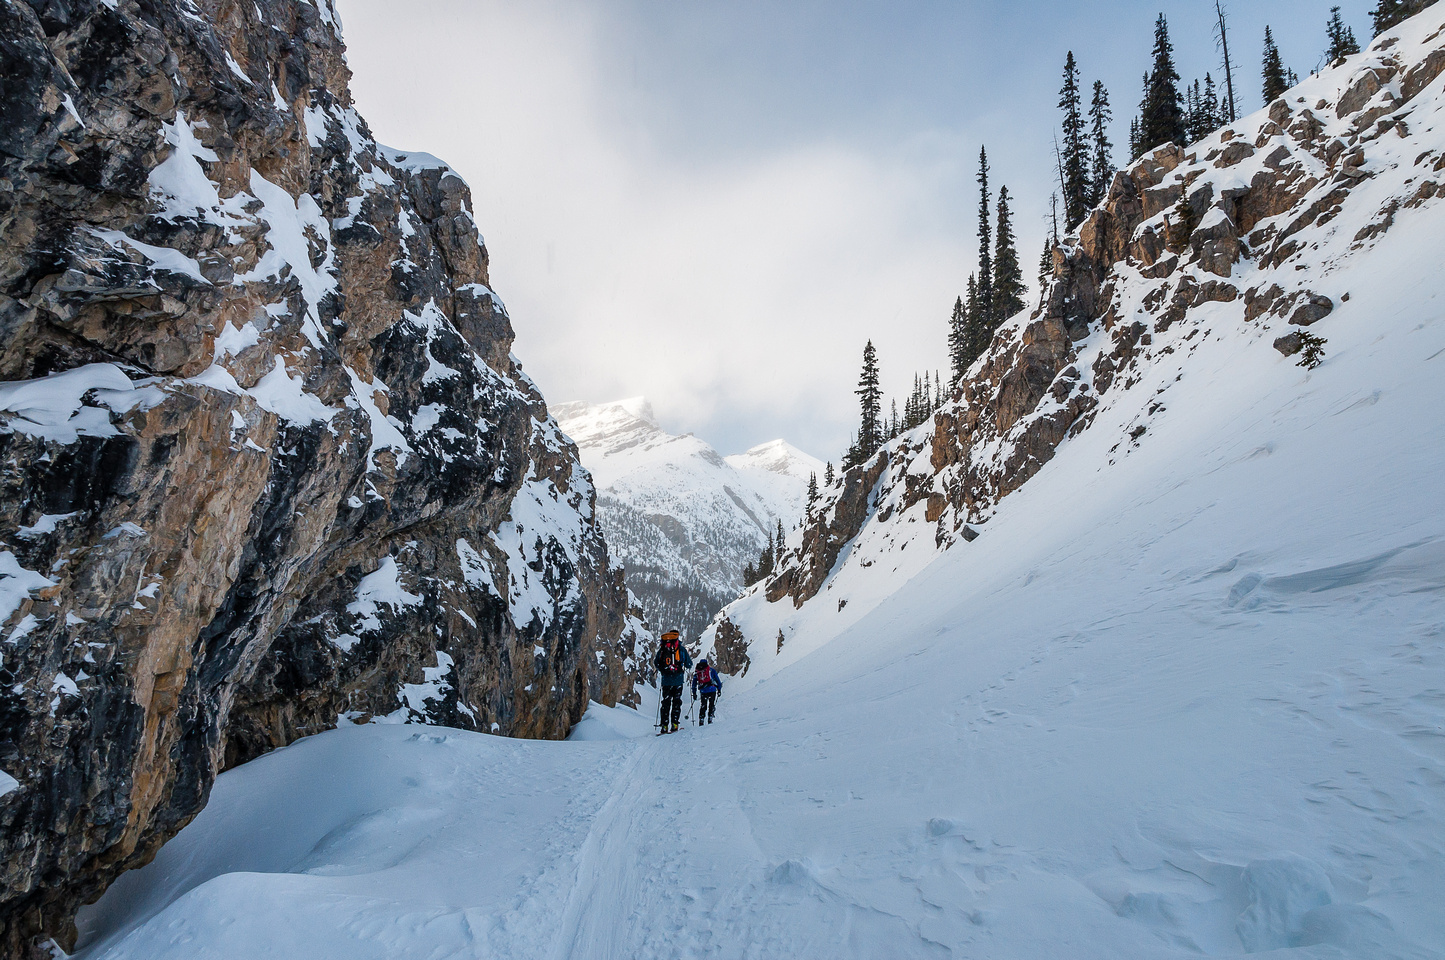 Descending the Bow Canyon towards Bow Lake.